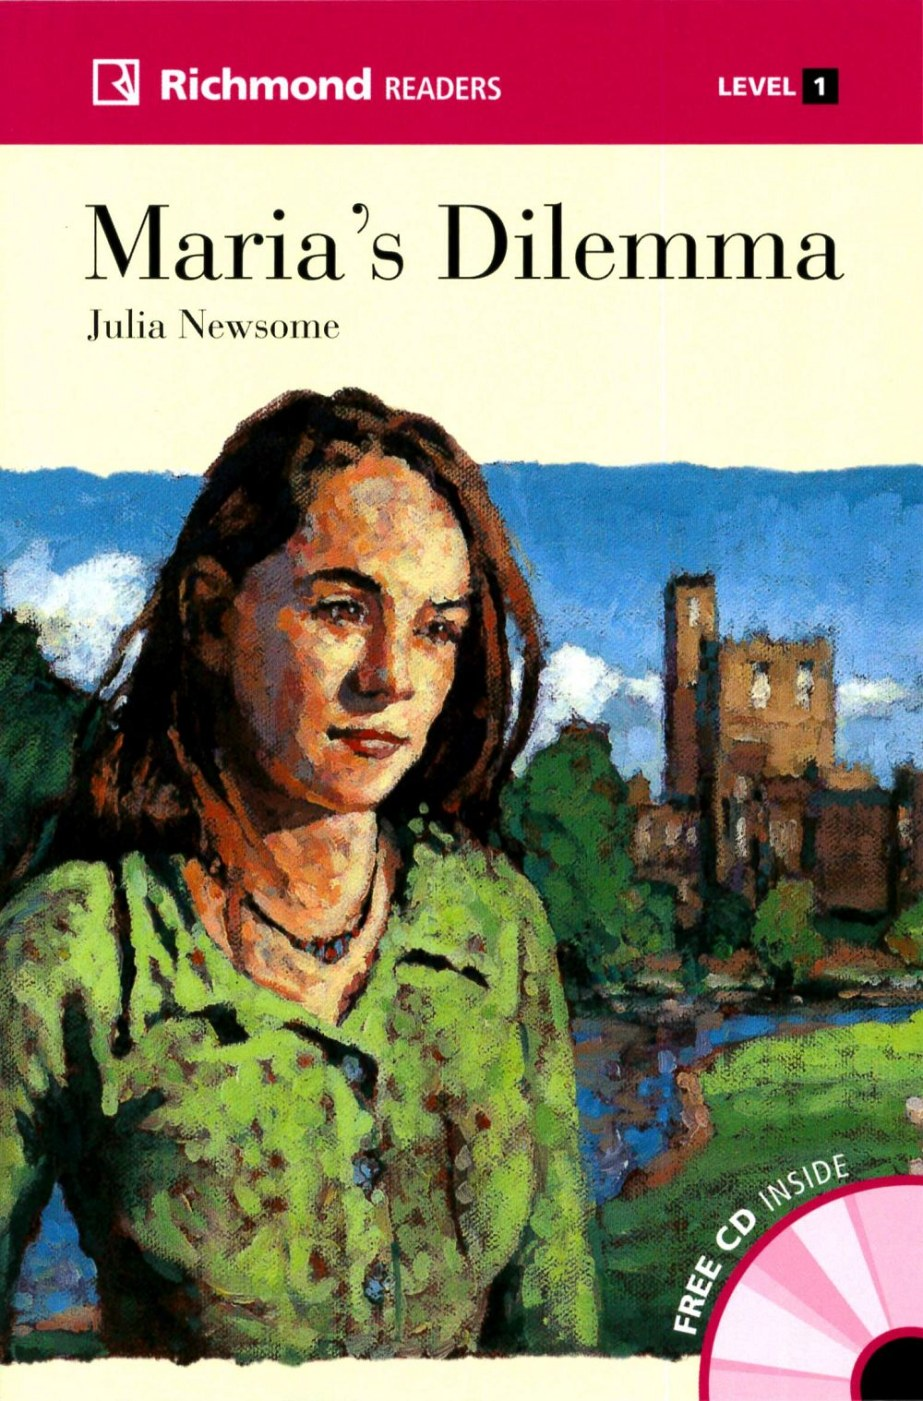 Richmond Readers ^(1^) Maria's Dilemma with A